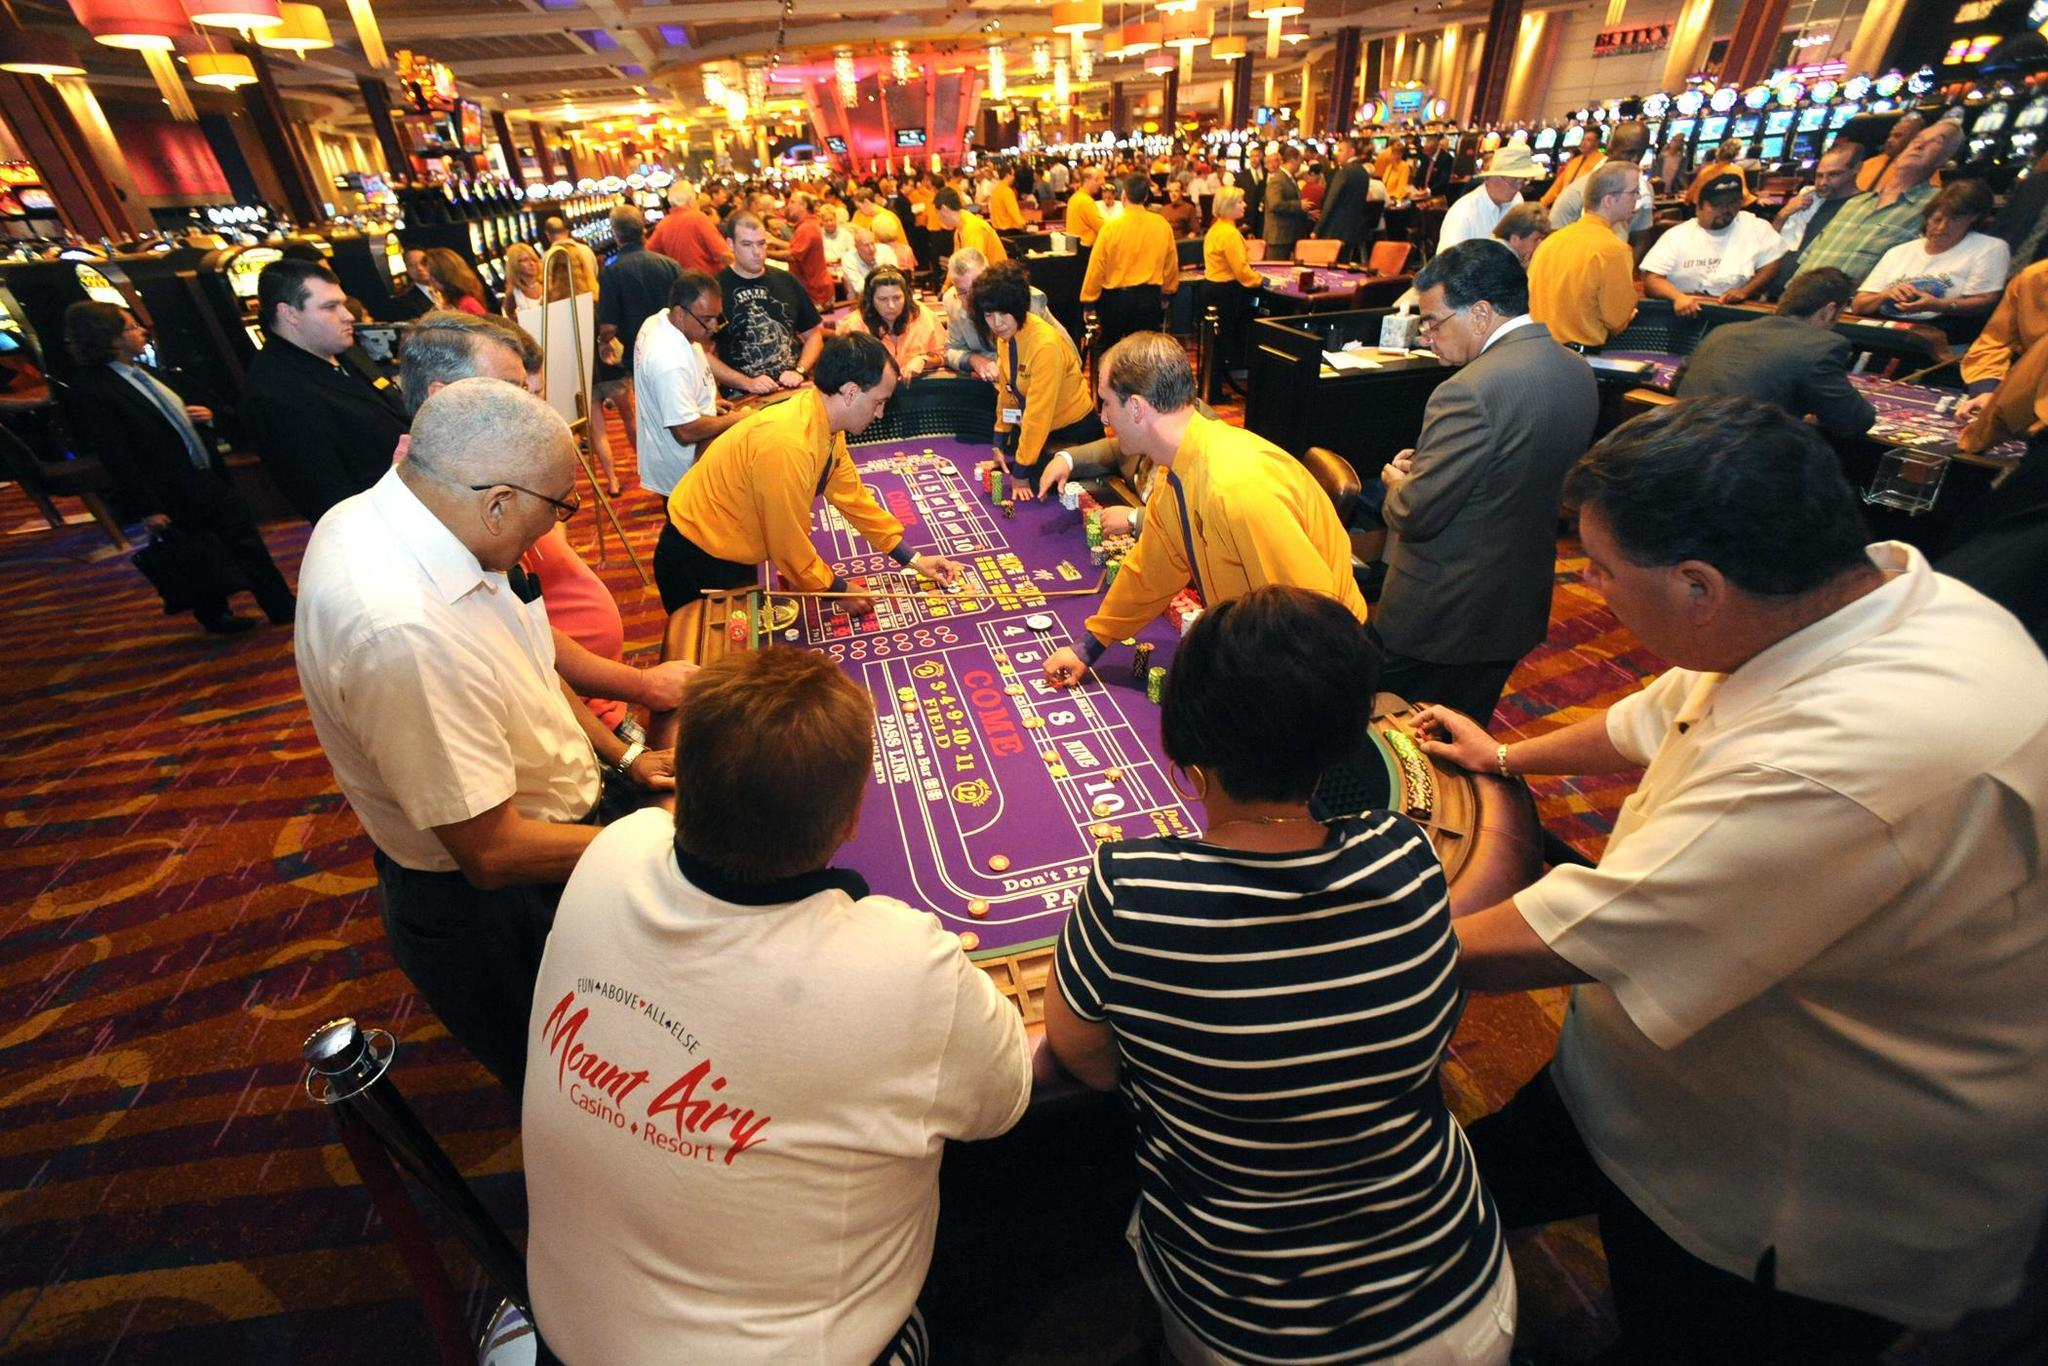 Mount Airy Gambler Drinks 27 Rum And Cokes Falls Off